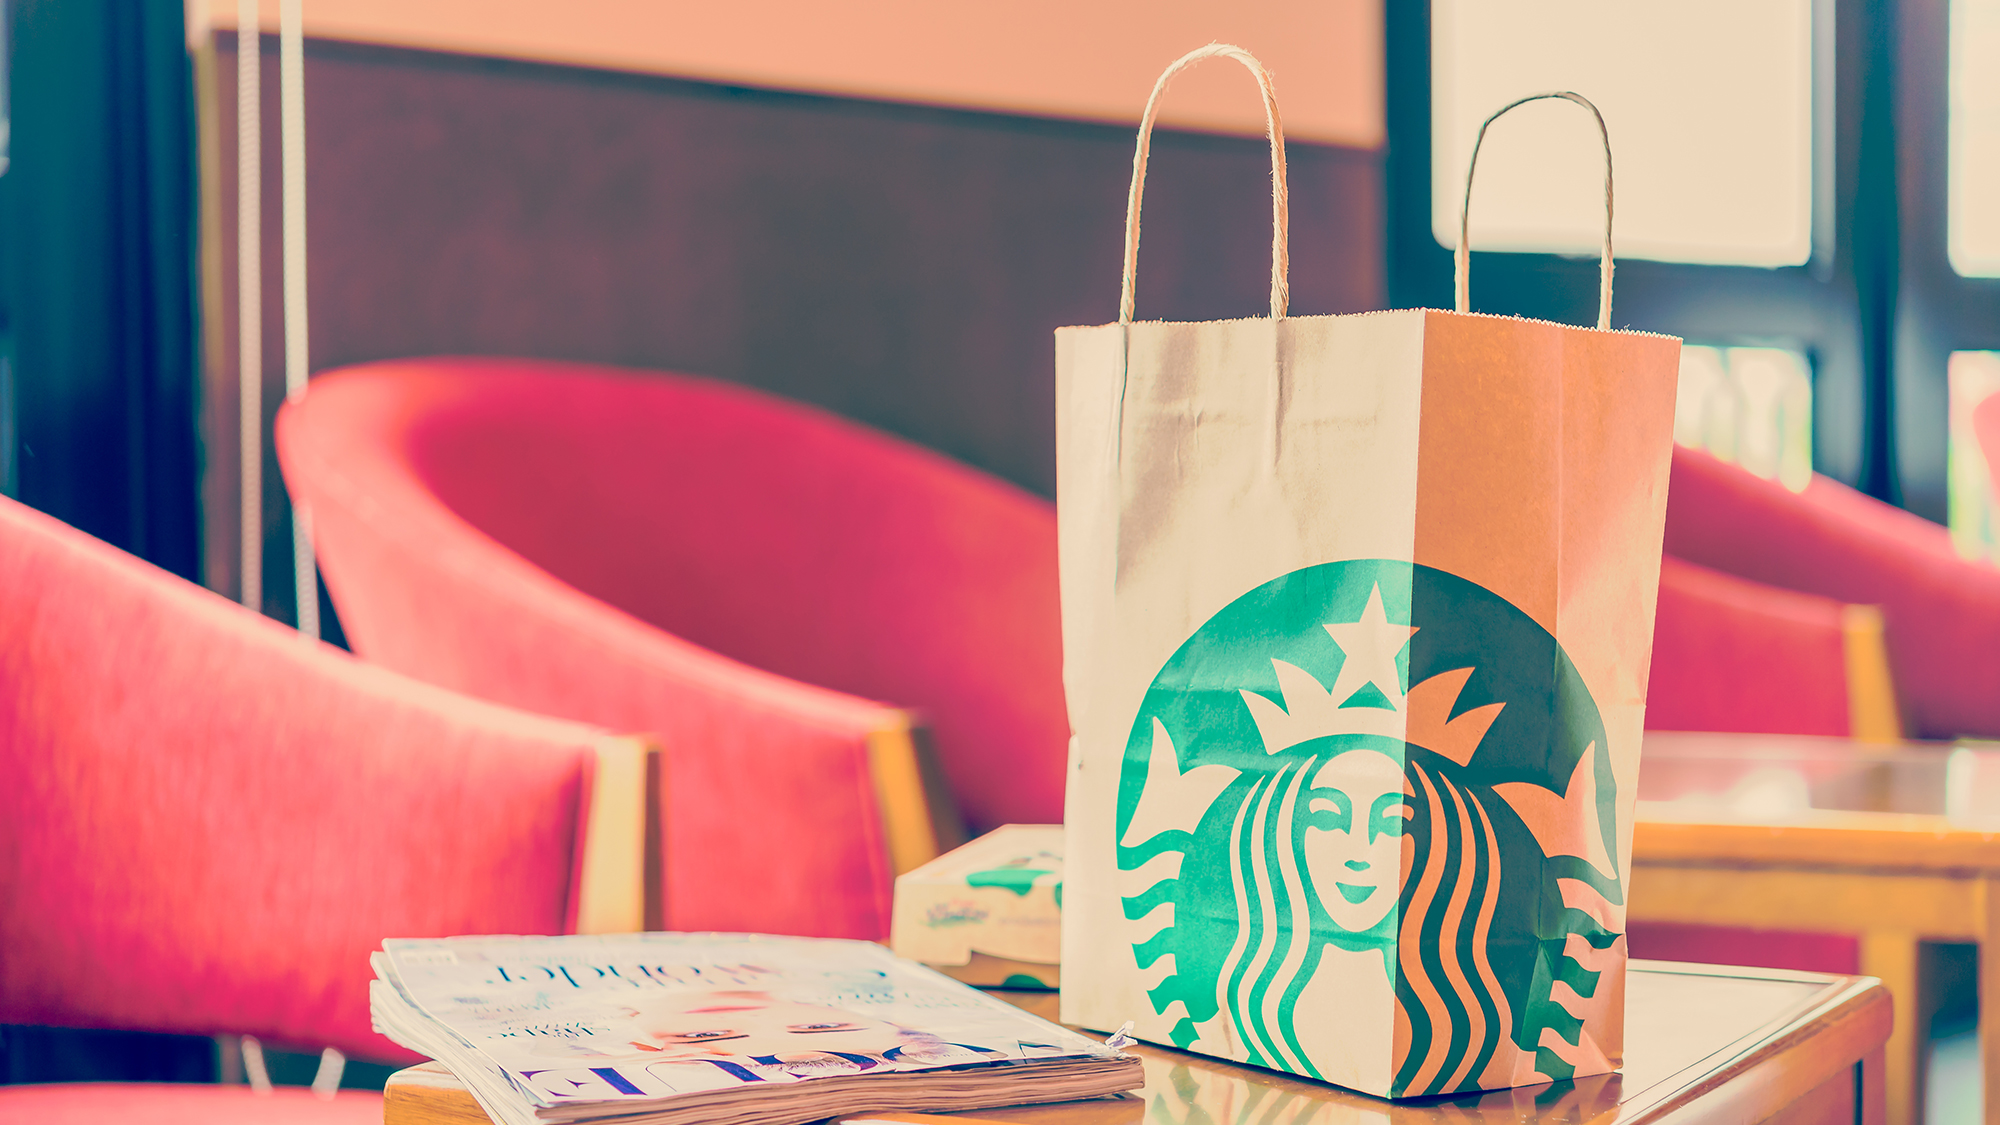 A Starbucks bag in a coffee shop.